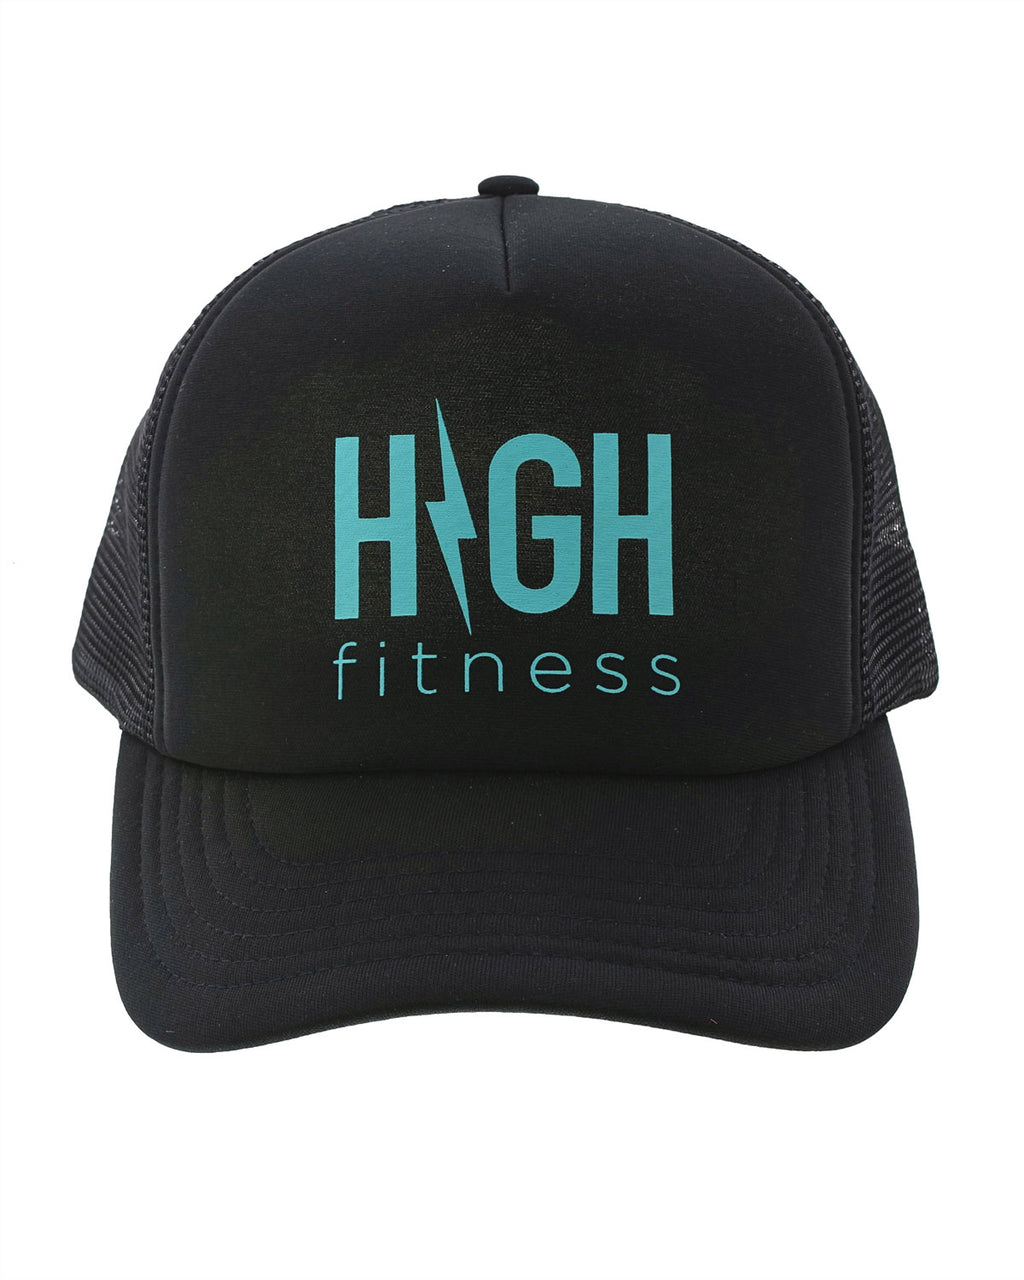 Black Trucker Hat with Teal Logo